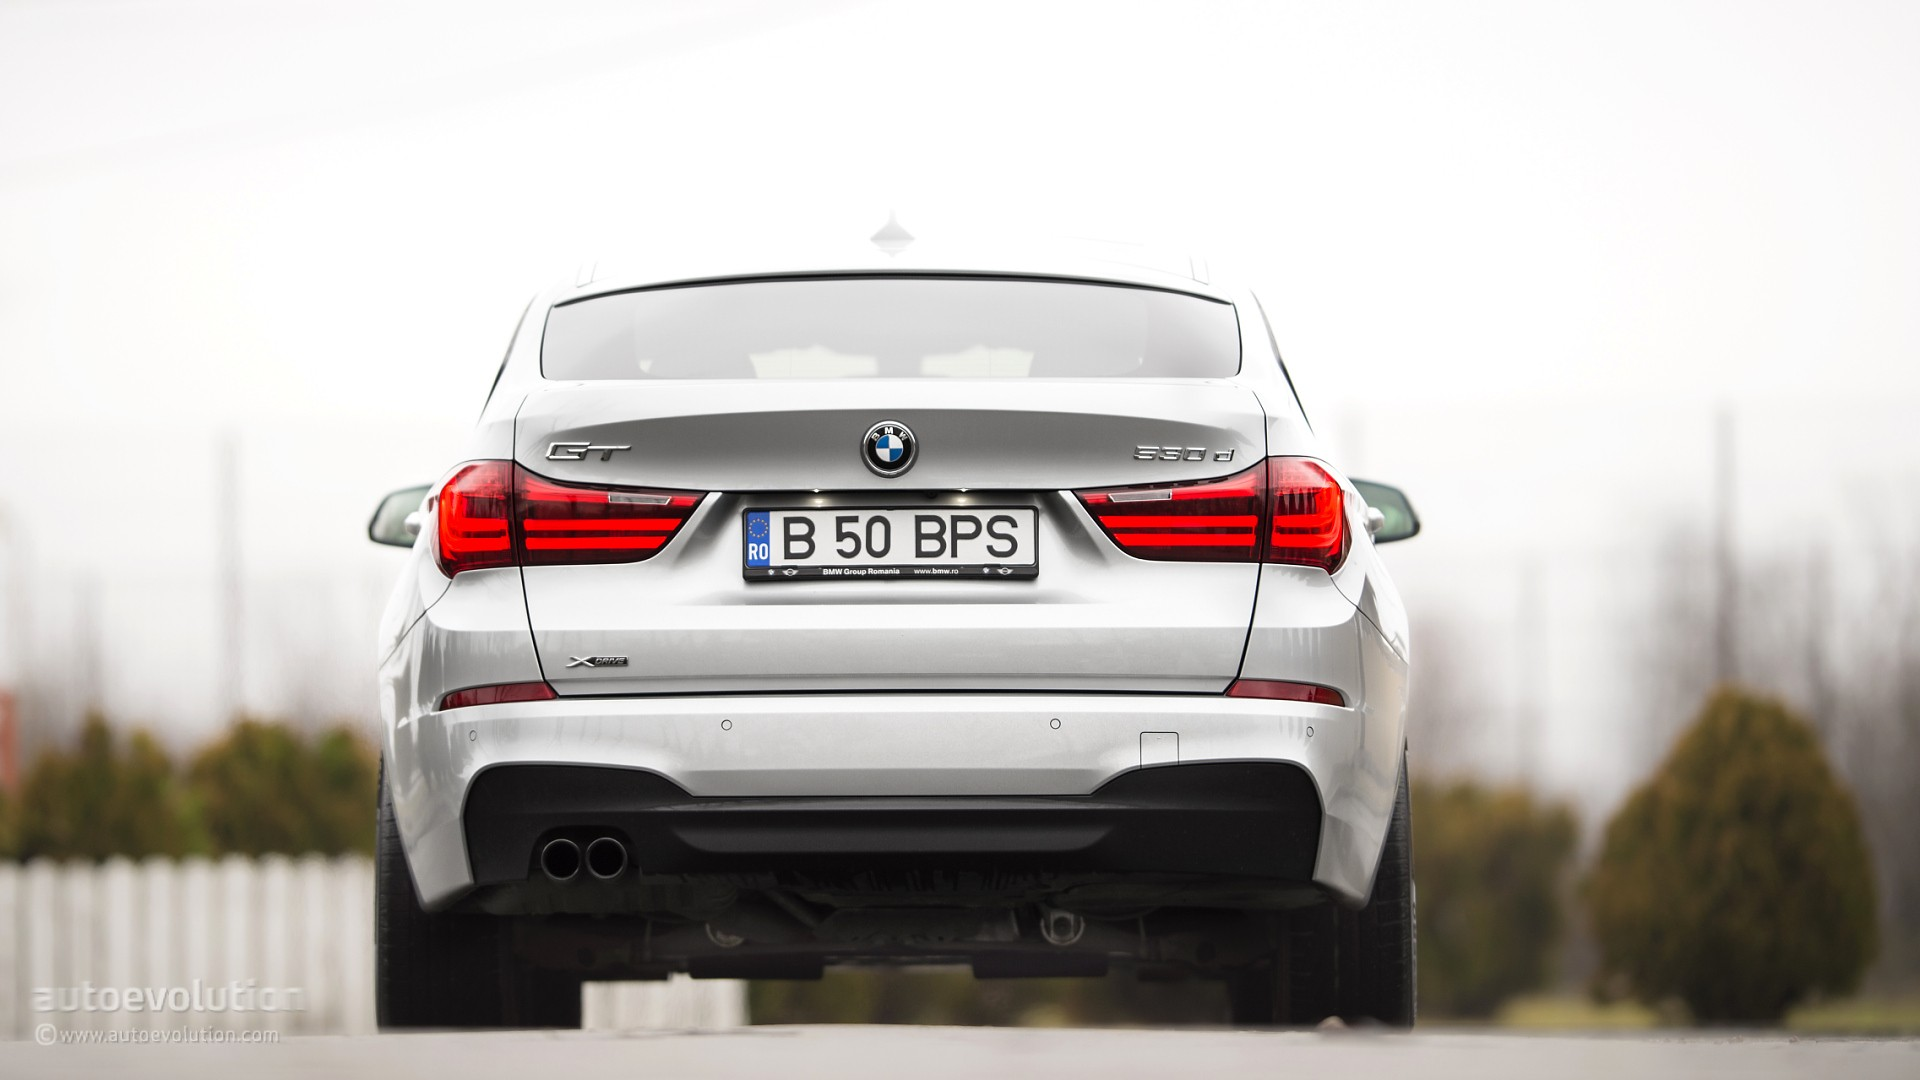 Bmw 5 Series Gran Turismo Review 2015 Bmw 5 Series Gran Turismo Review Autoevolution